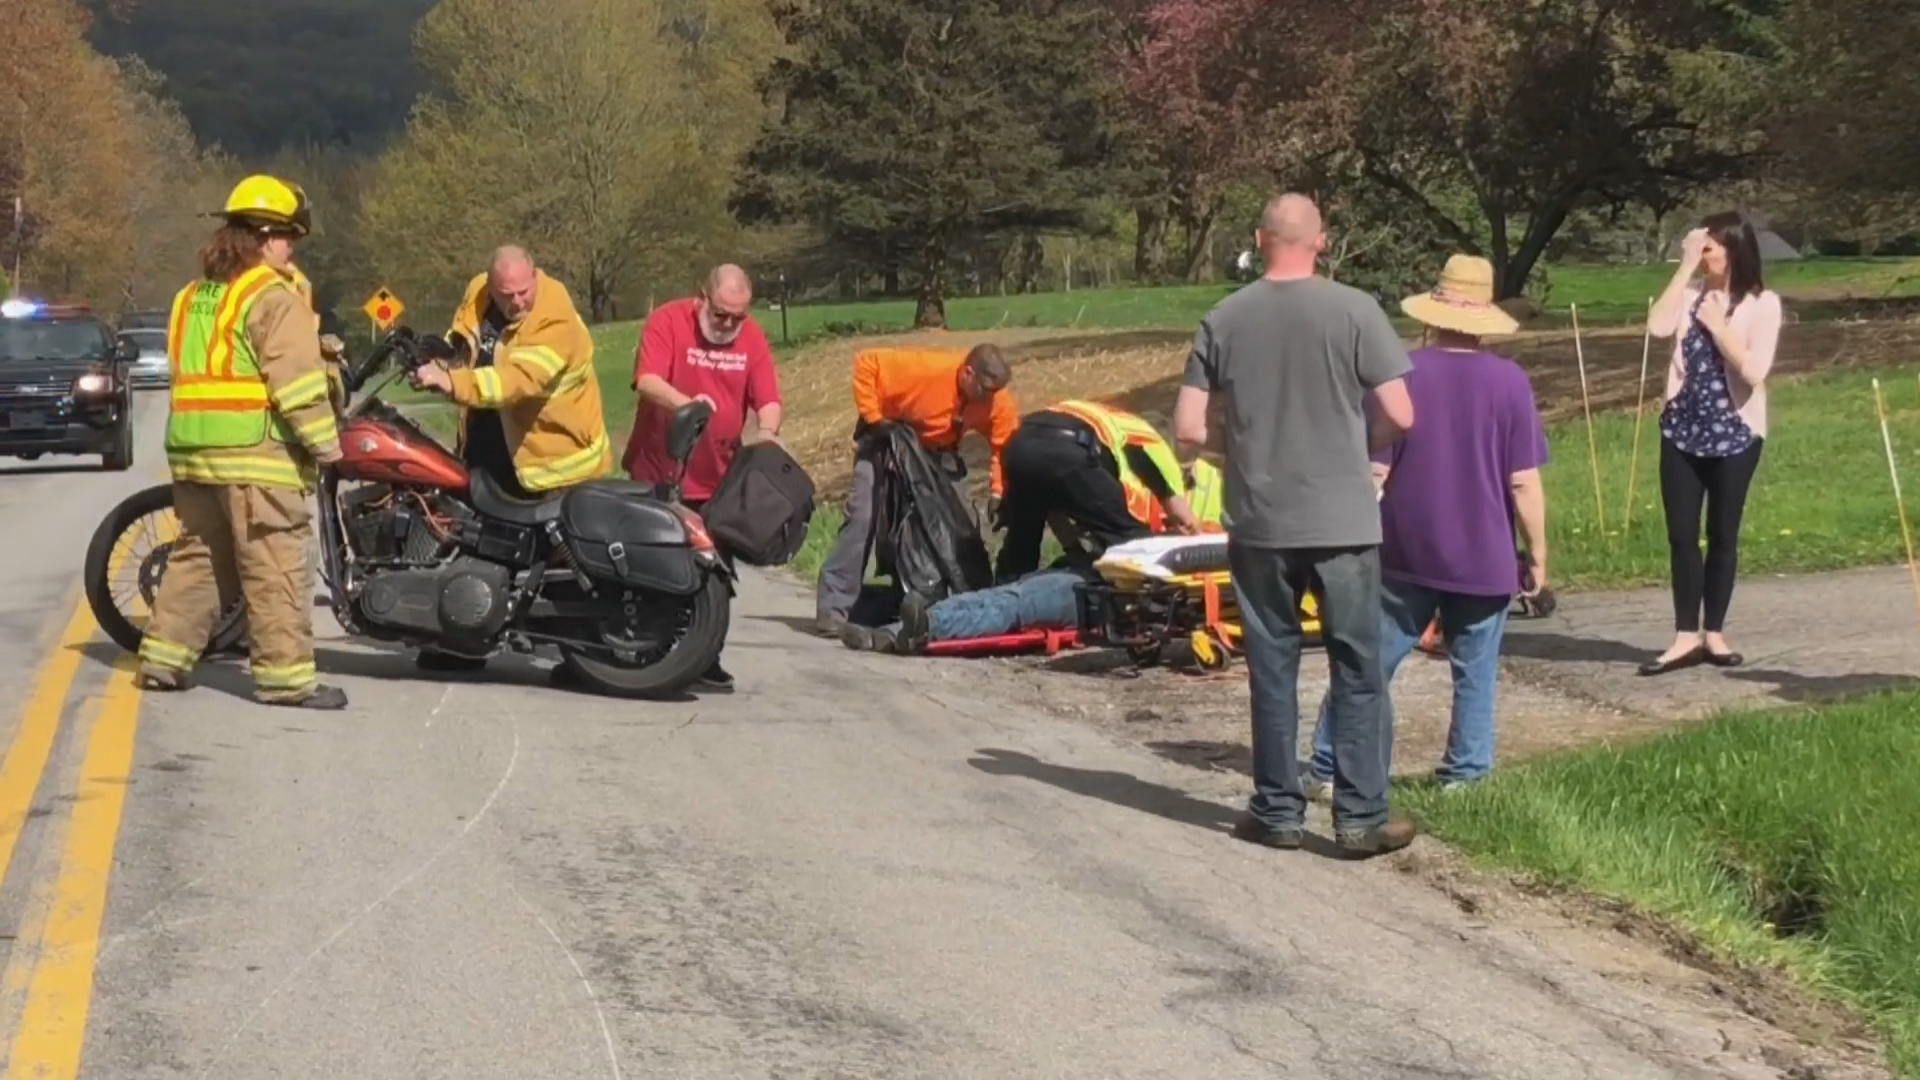 One person injured in motorcycle accident